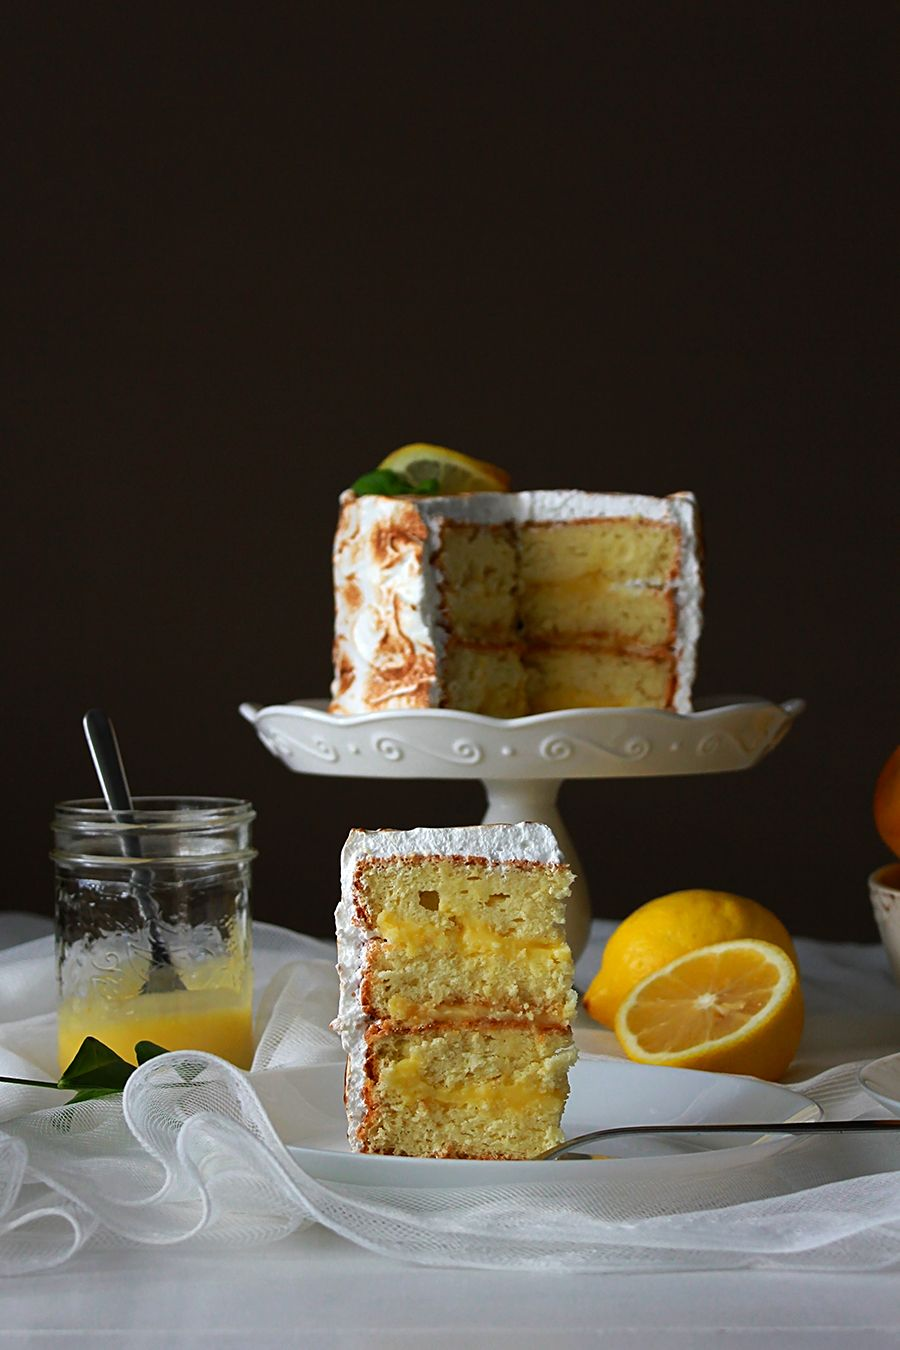 Chiffon cake is different from angel food cake chiffon cake chiffon cake is different from angel food cake chiffon cake contains egg yolks and oil forumfinder Gallery